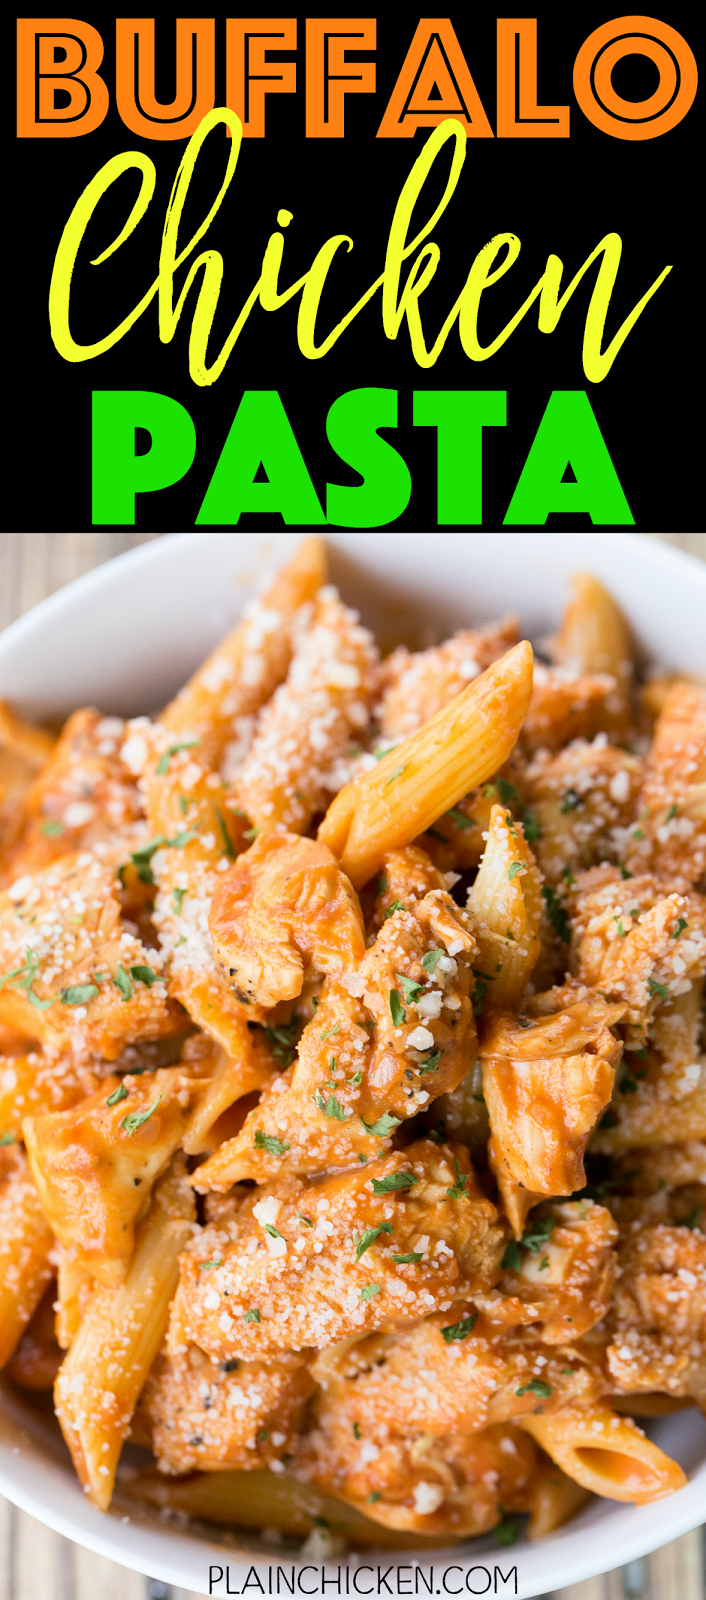 Buffalo Chicken Pasta - ready in under 20 minutes! SO simple and SO delicious! Great weeknight pasta recipe! Chicken and penne pasta tossed in tomato sauce, wing sauce, shallots, garlic, worcestershire and heavy cream. Top with some grated Parmesan cheese. Everyone cleaned their plates!